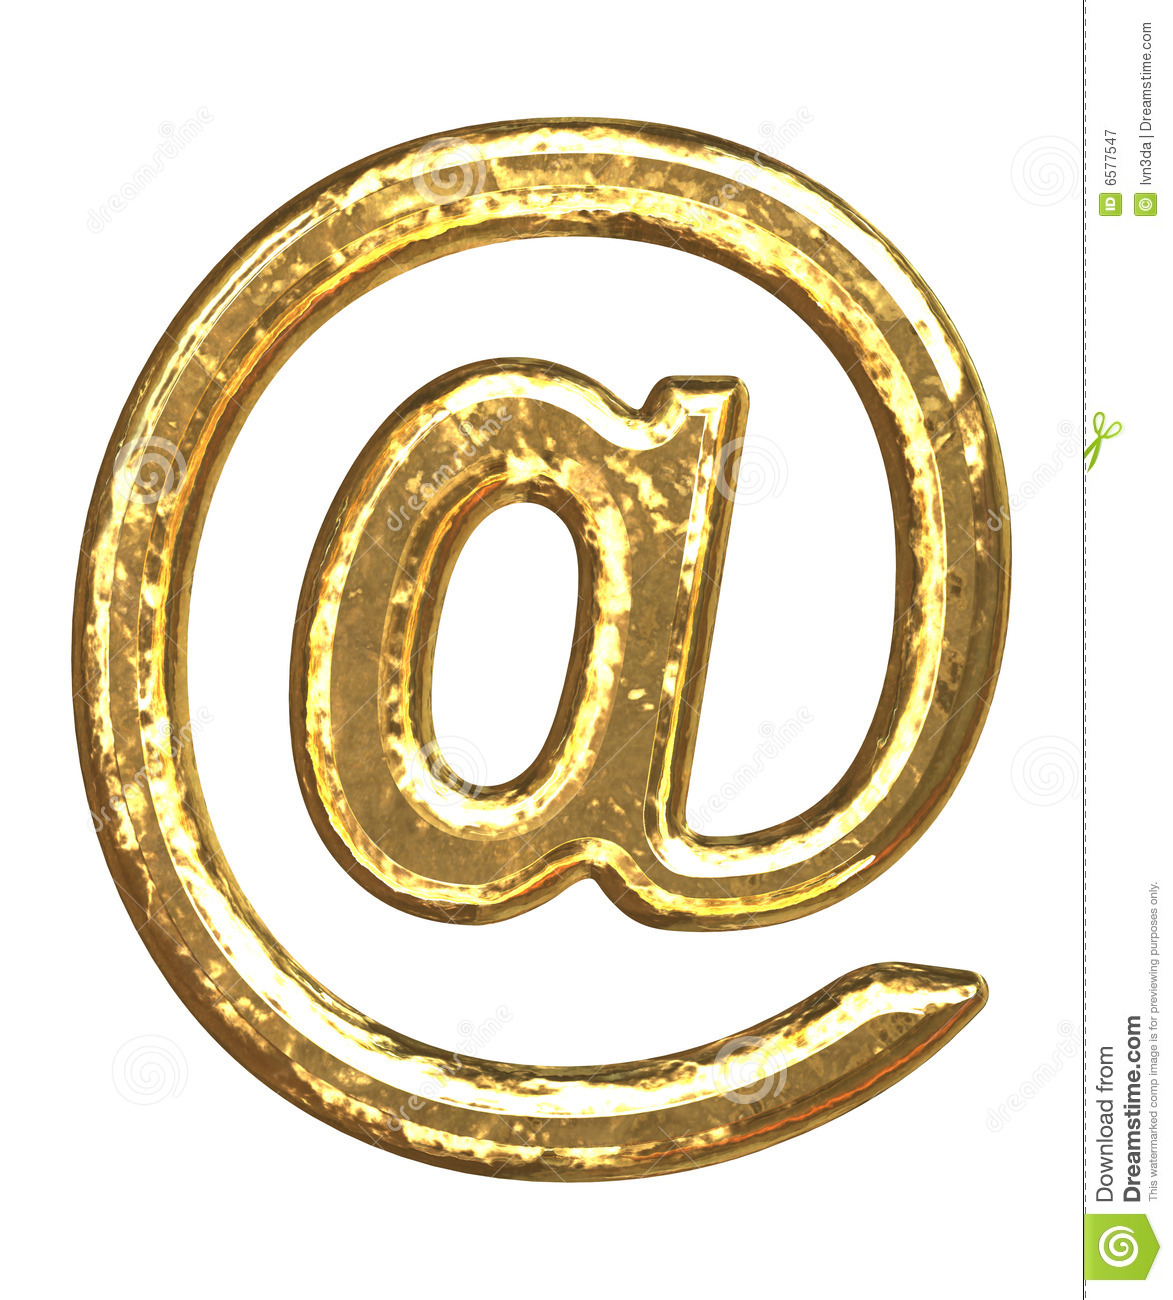 Golden Font At Sign Royalty Free Stock Photography